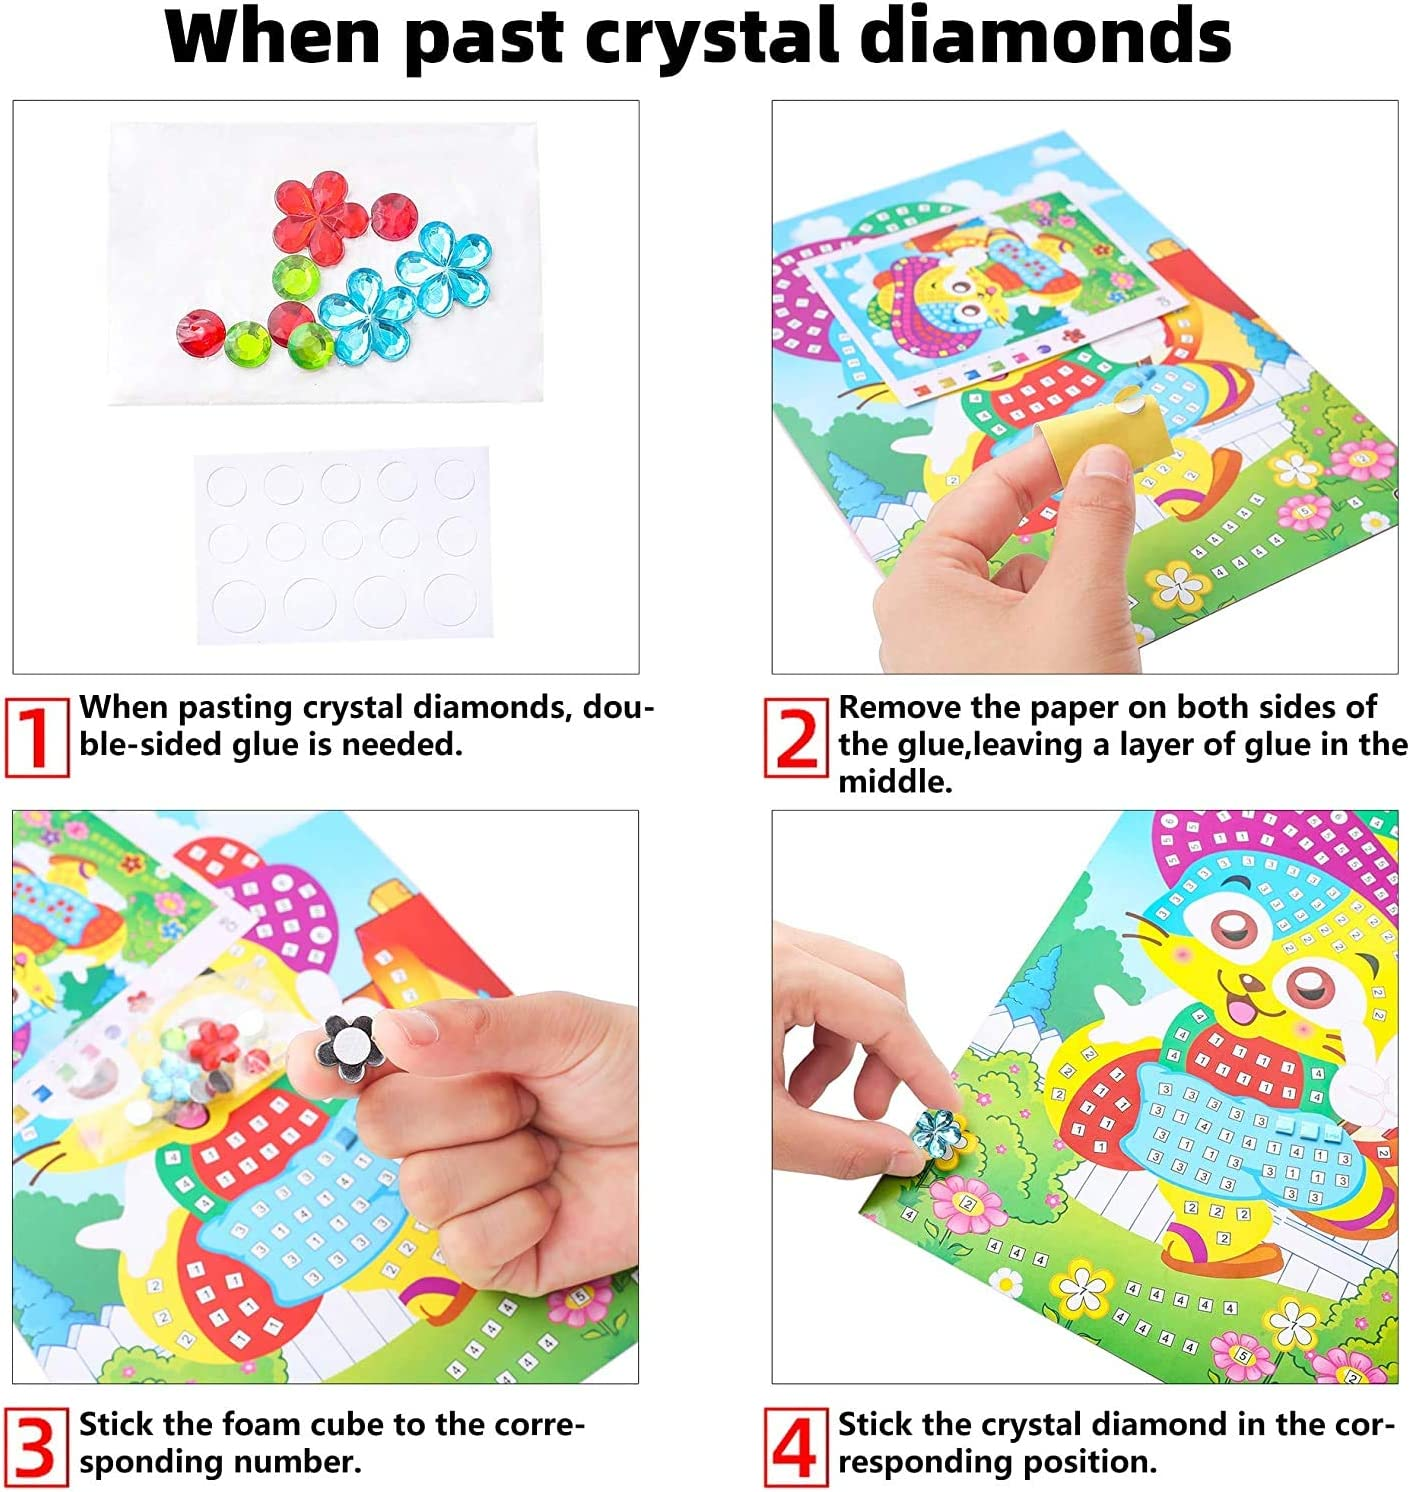 Flowers Upriver Mosaic Stickers Art Kits for Kids etc Patterns. DIY Hand Made 3D Mosaic Stickers Art for Kids with 12 PCS Animals EVA Stickers Mosaic Art Craft with Crystal Diamond